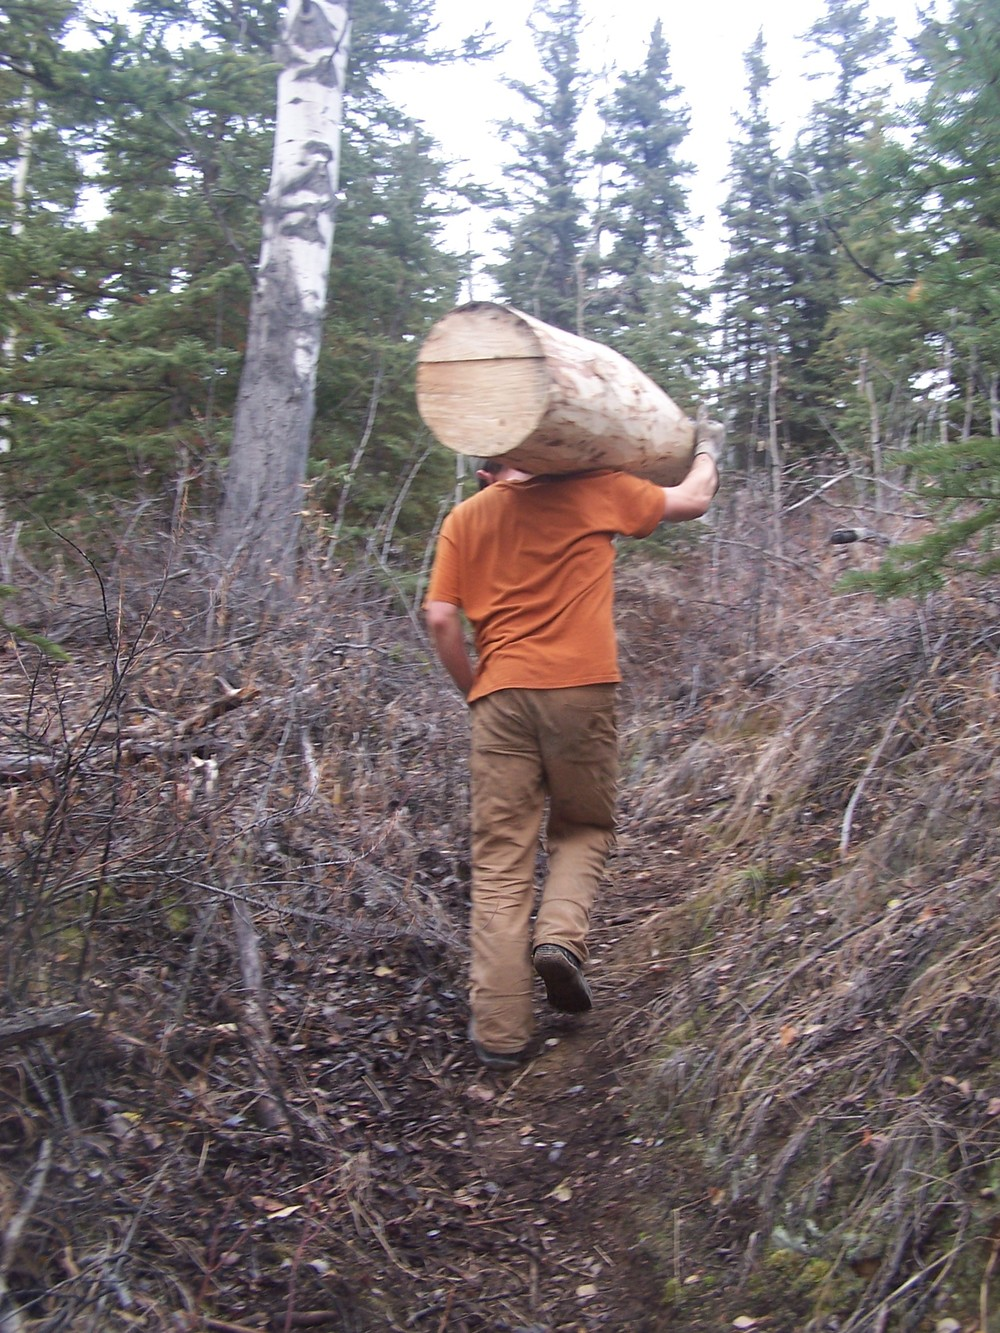 Hauling logs up the hill method 1- muscle powered.